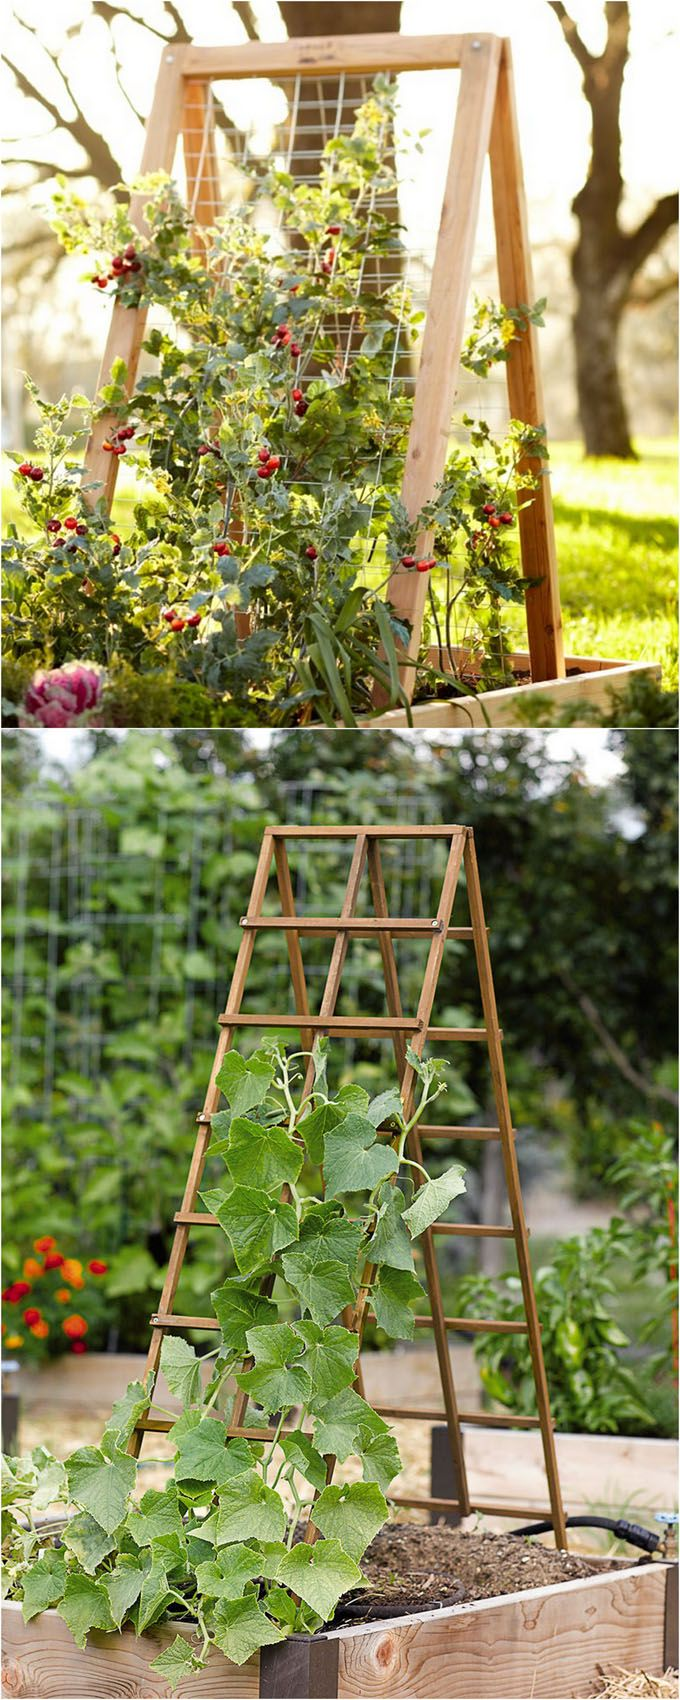 17 Best ideas about Vegetable Gardening on Pinterest | Gardening ...